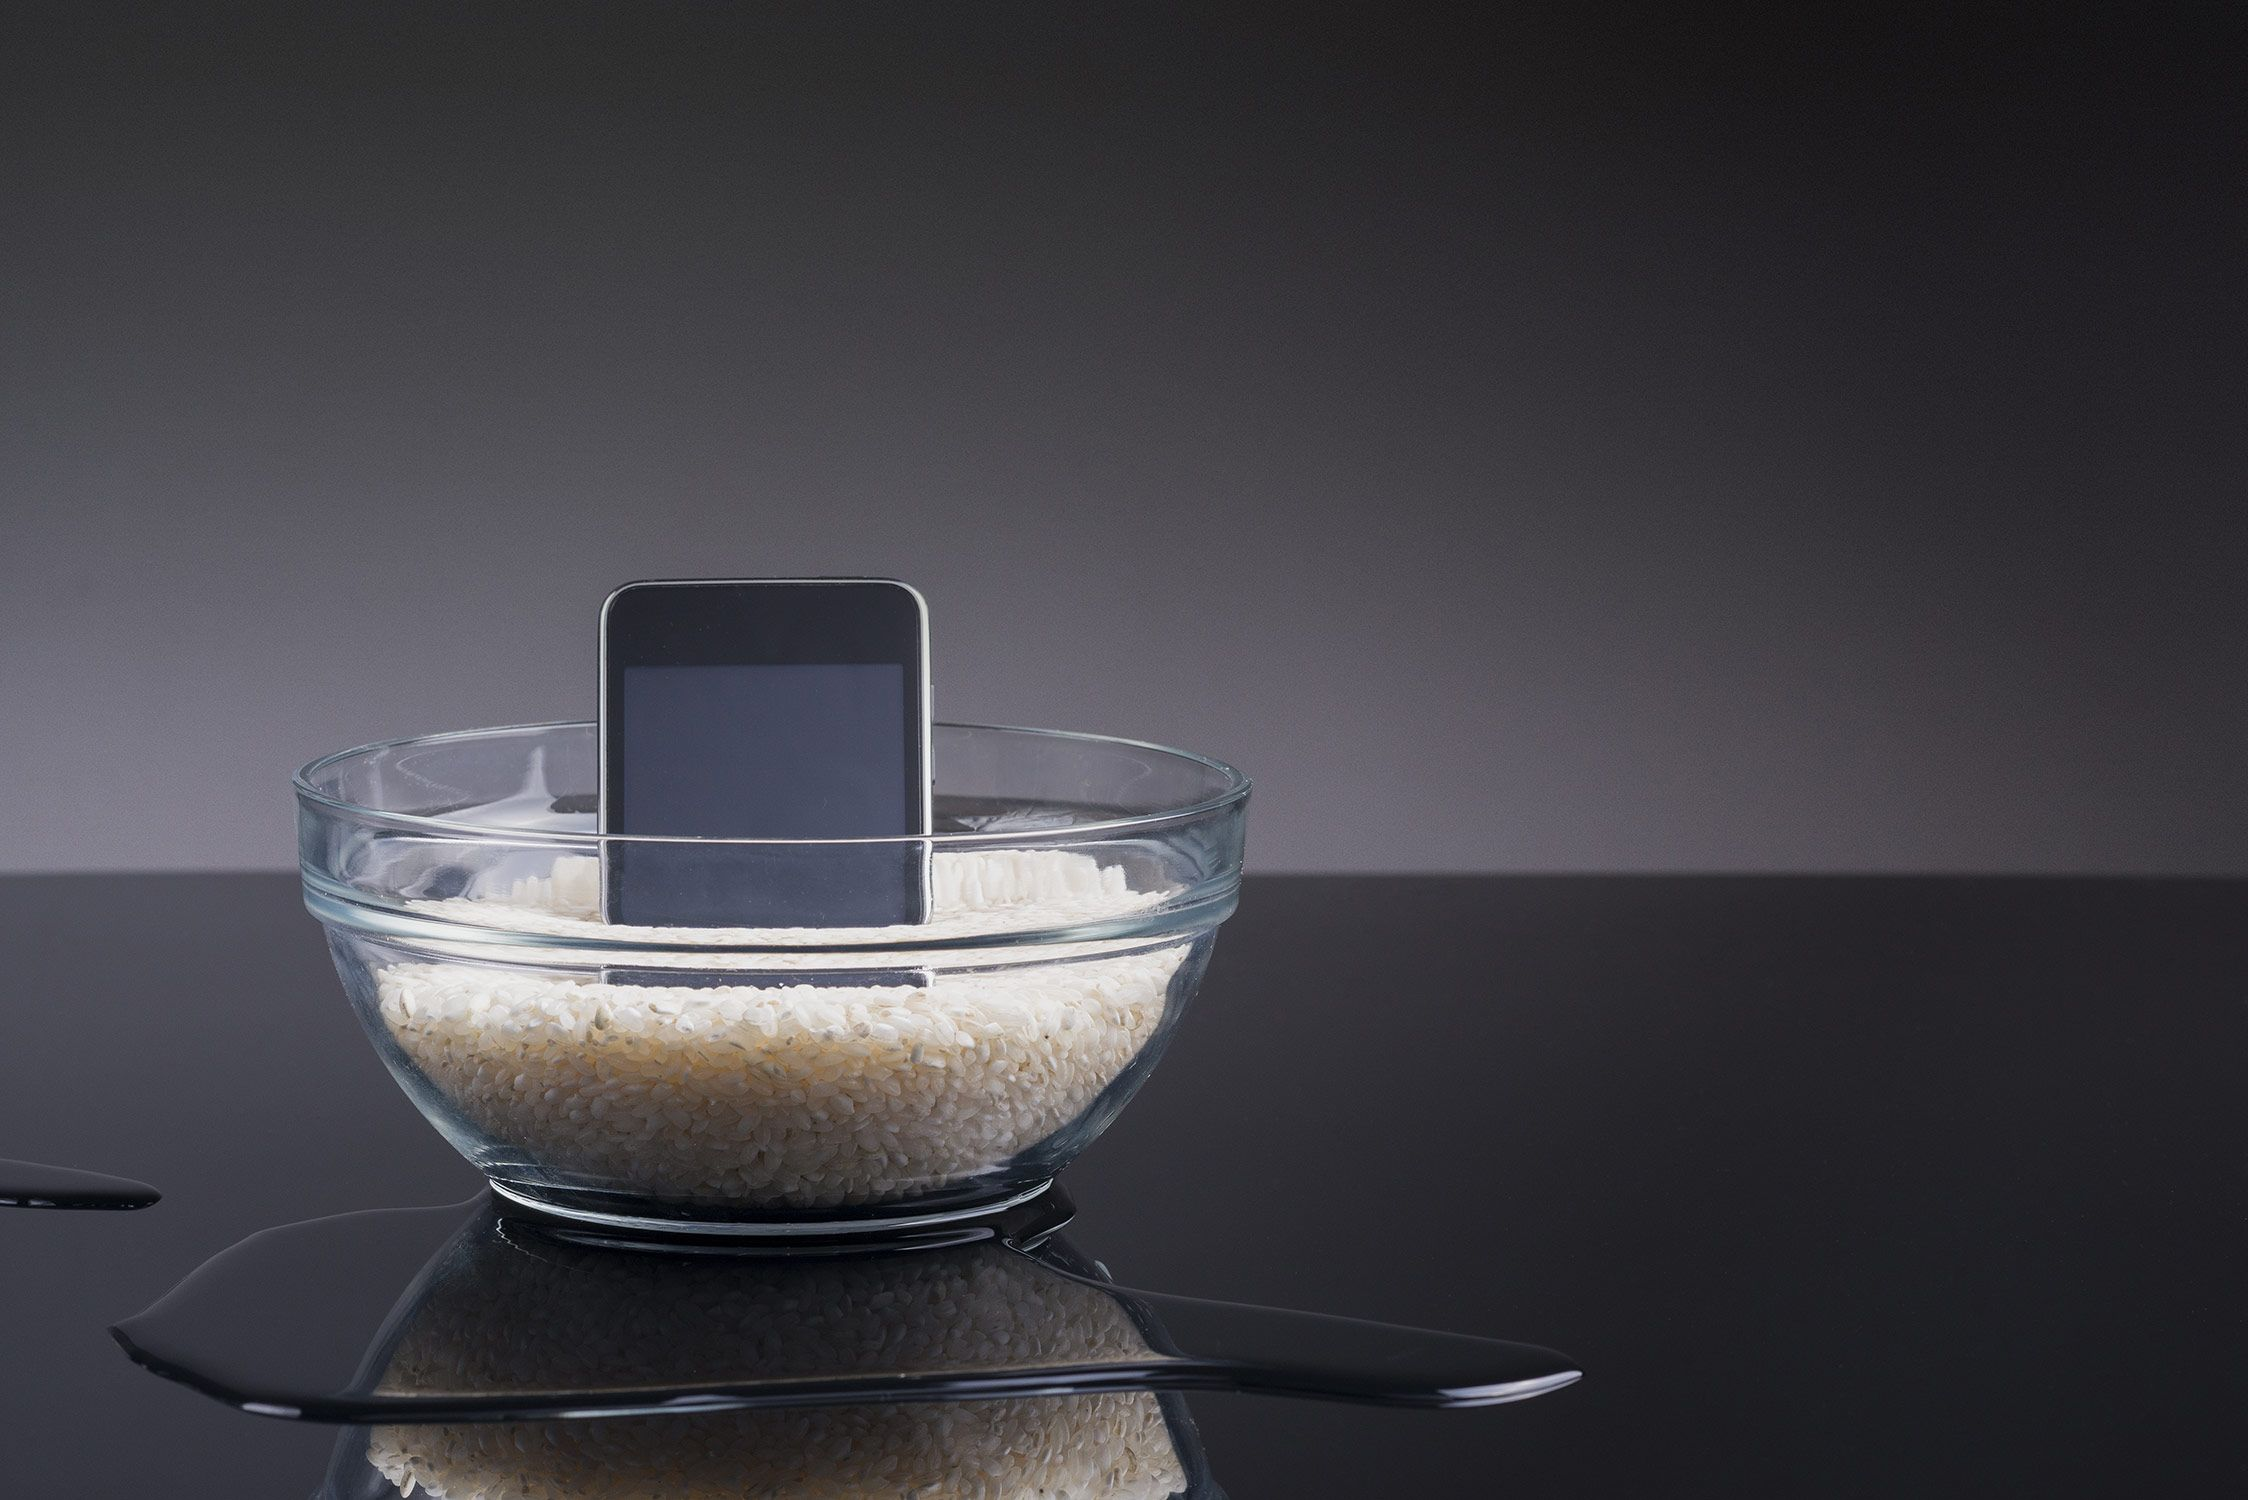 The Proper Method to Resurrect a Wet Phone With Rice